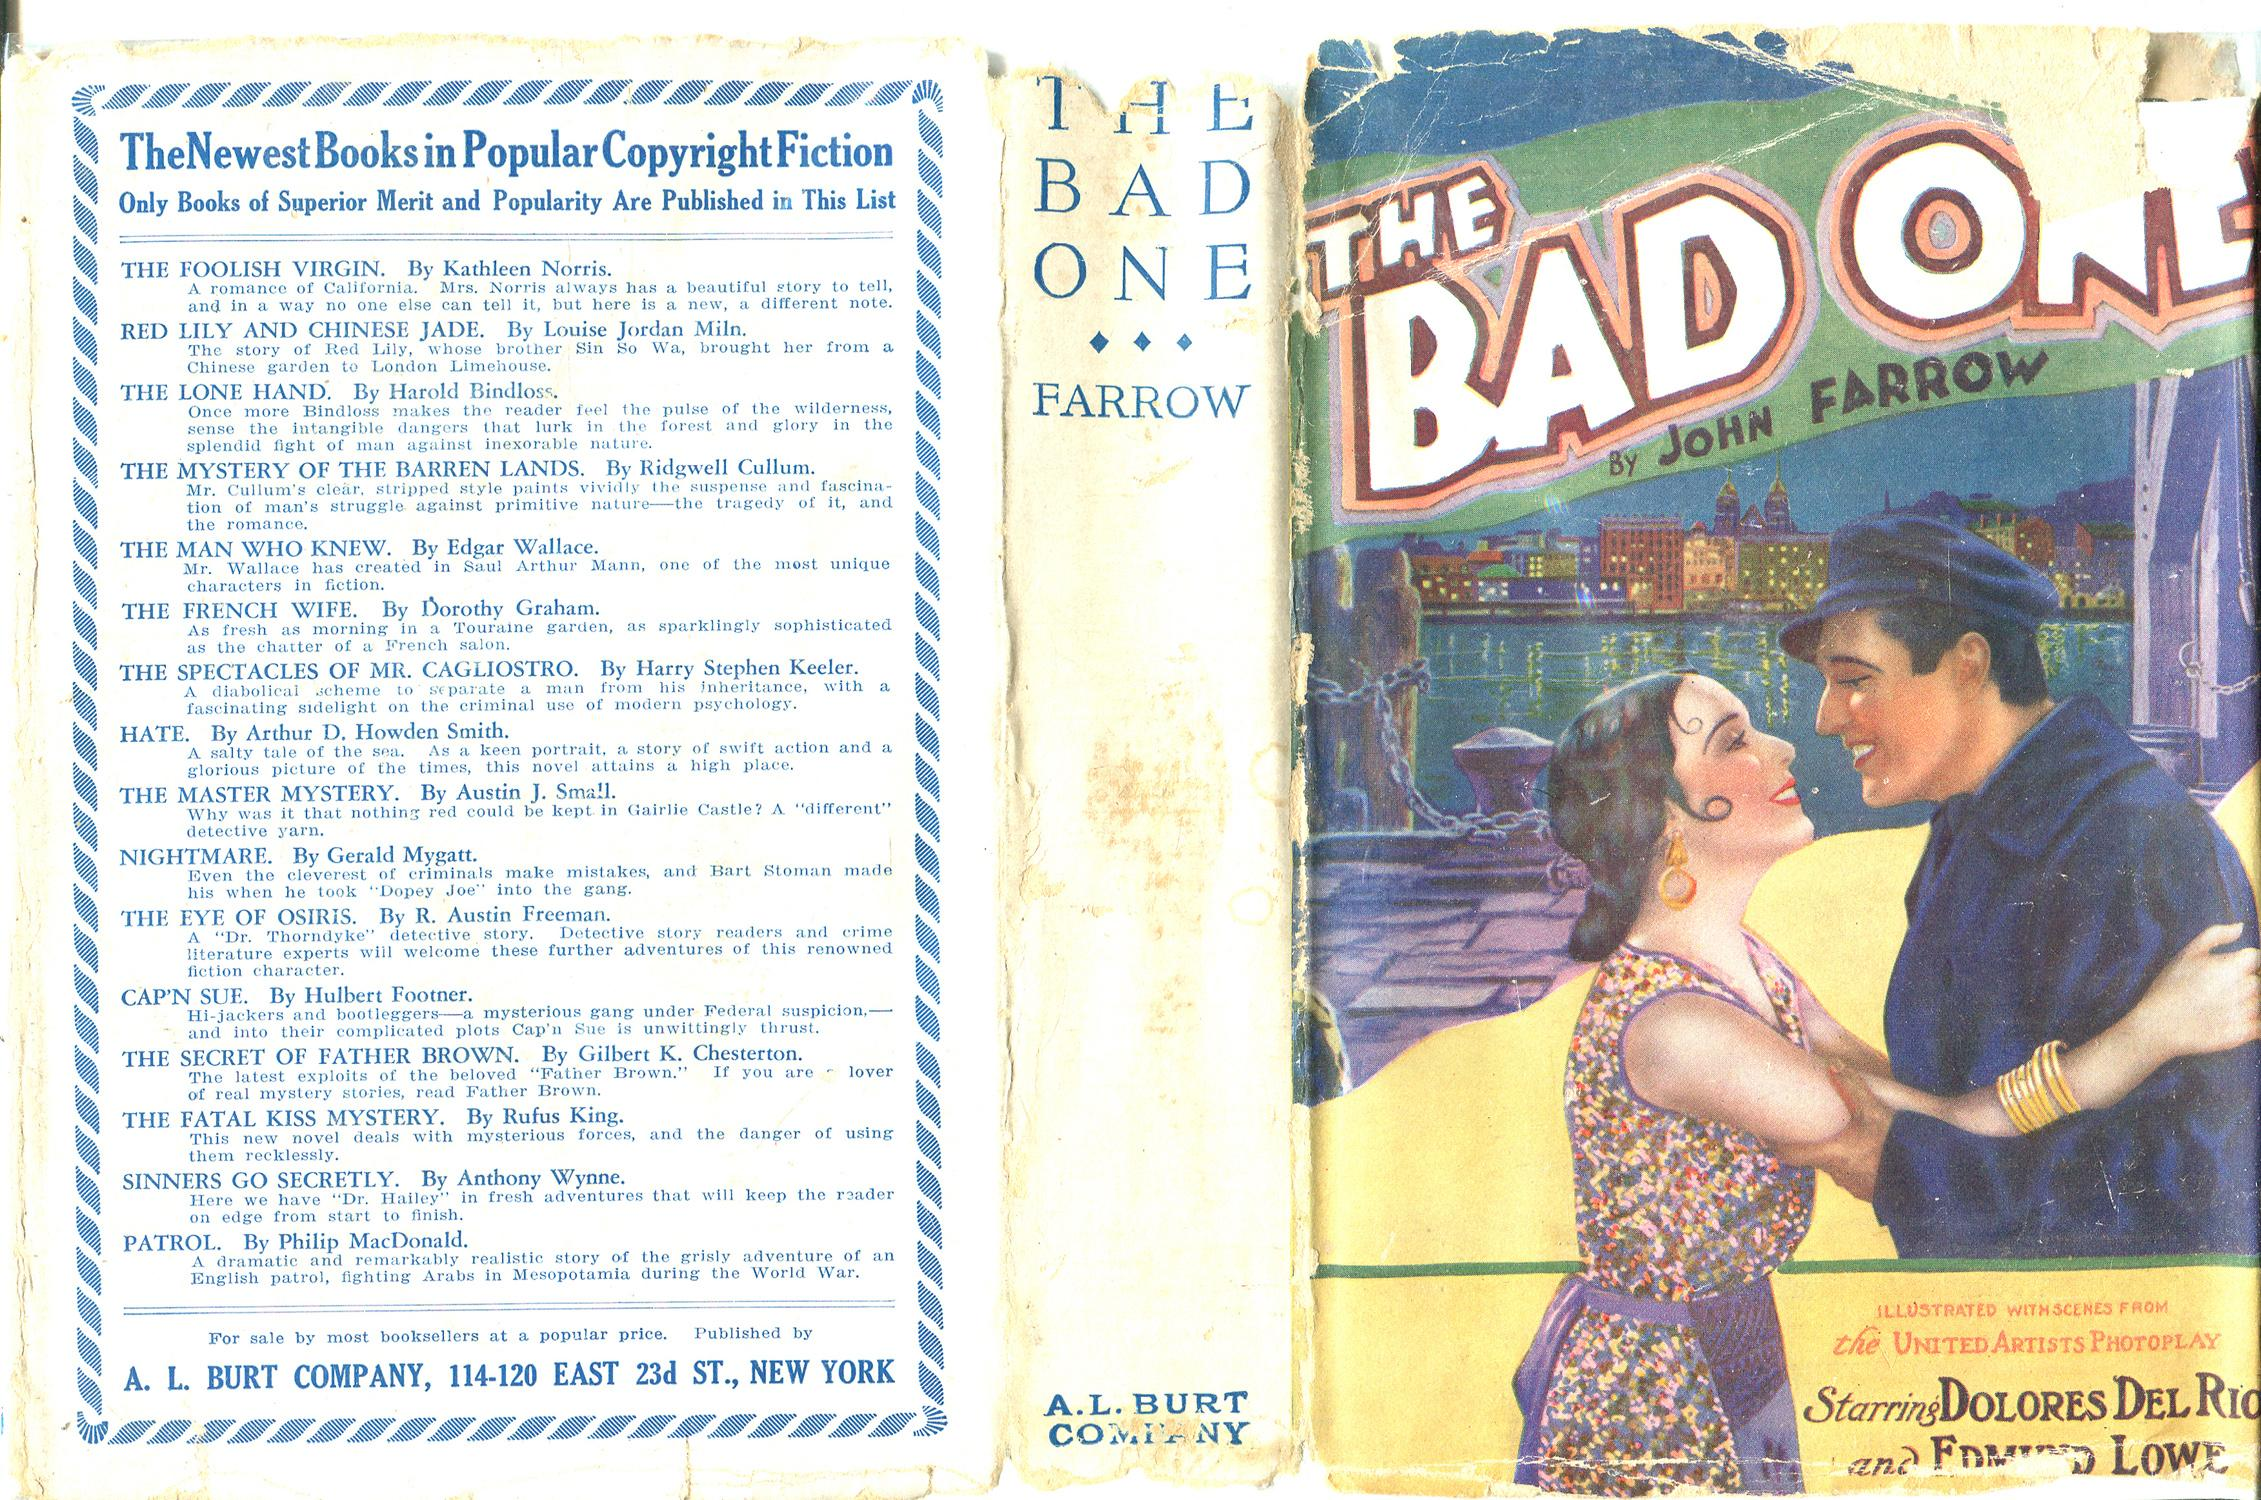 The Bad One: Farrow, John